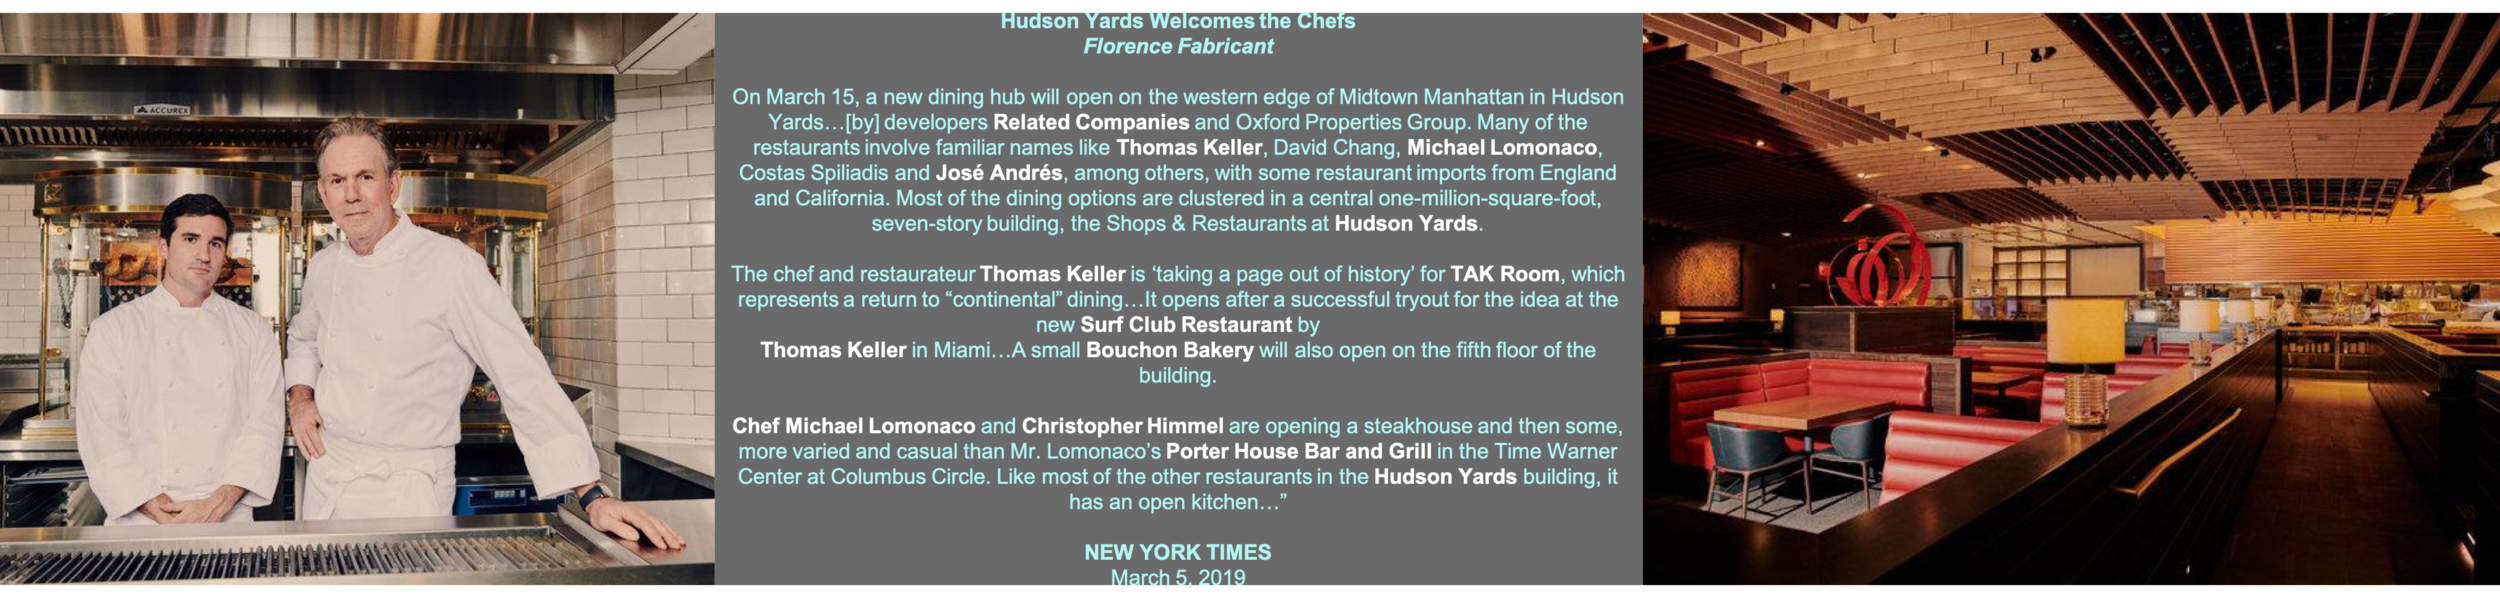 New York Times March 5 2019 Hudson Yards.png